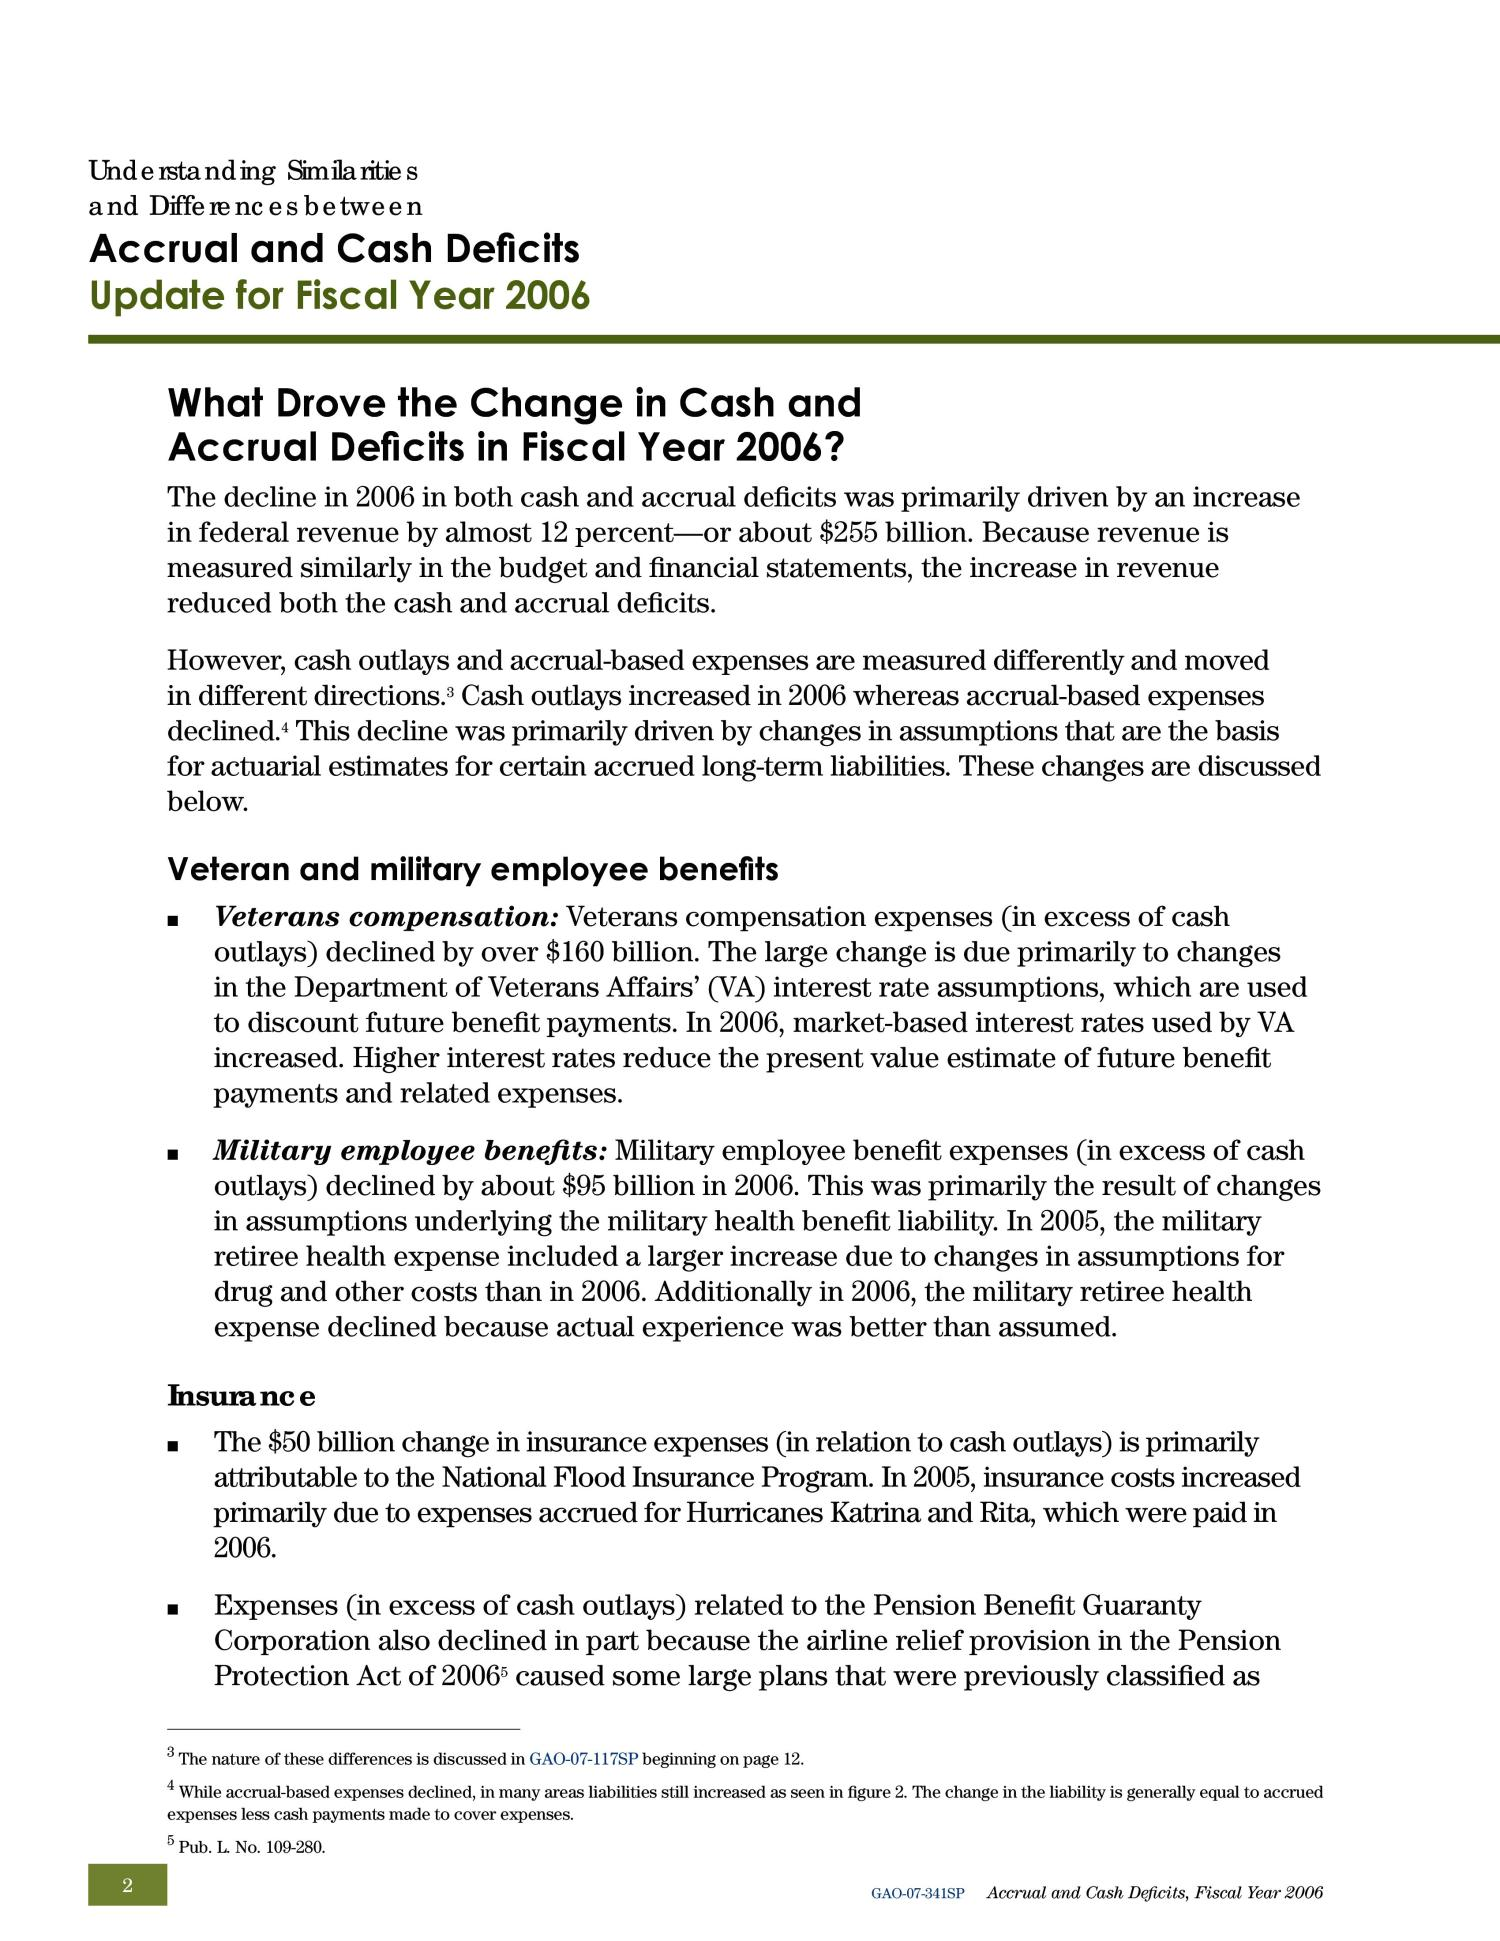 Understanding Similarities and Differences between Accrual and Cash Deficits: Update for Fiscal Year 2006, an E-supplement to GAO-07-117SP                                                                                                      [Sequence #]: 2 of 4